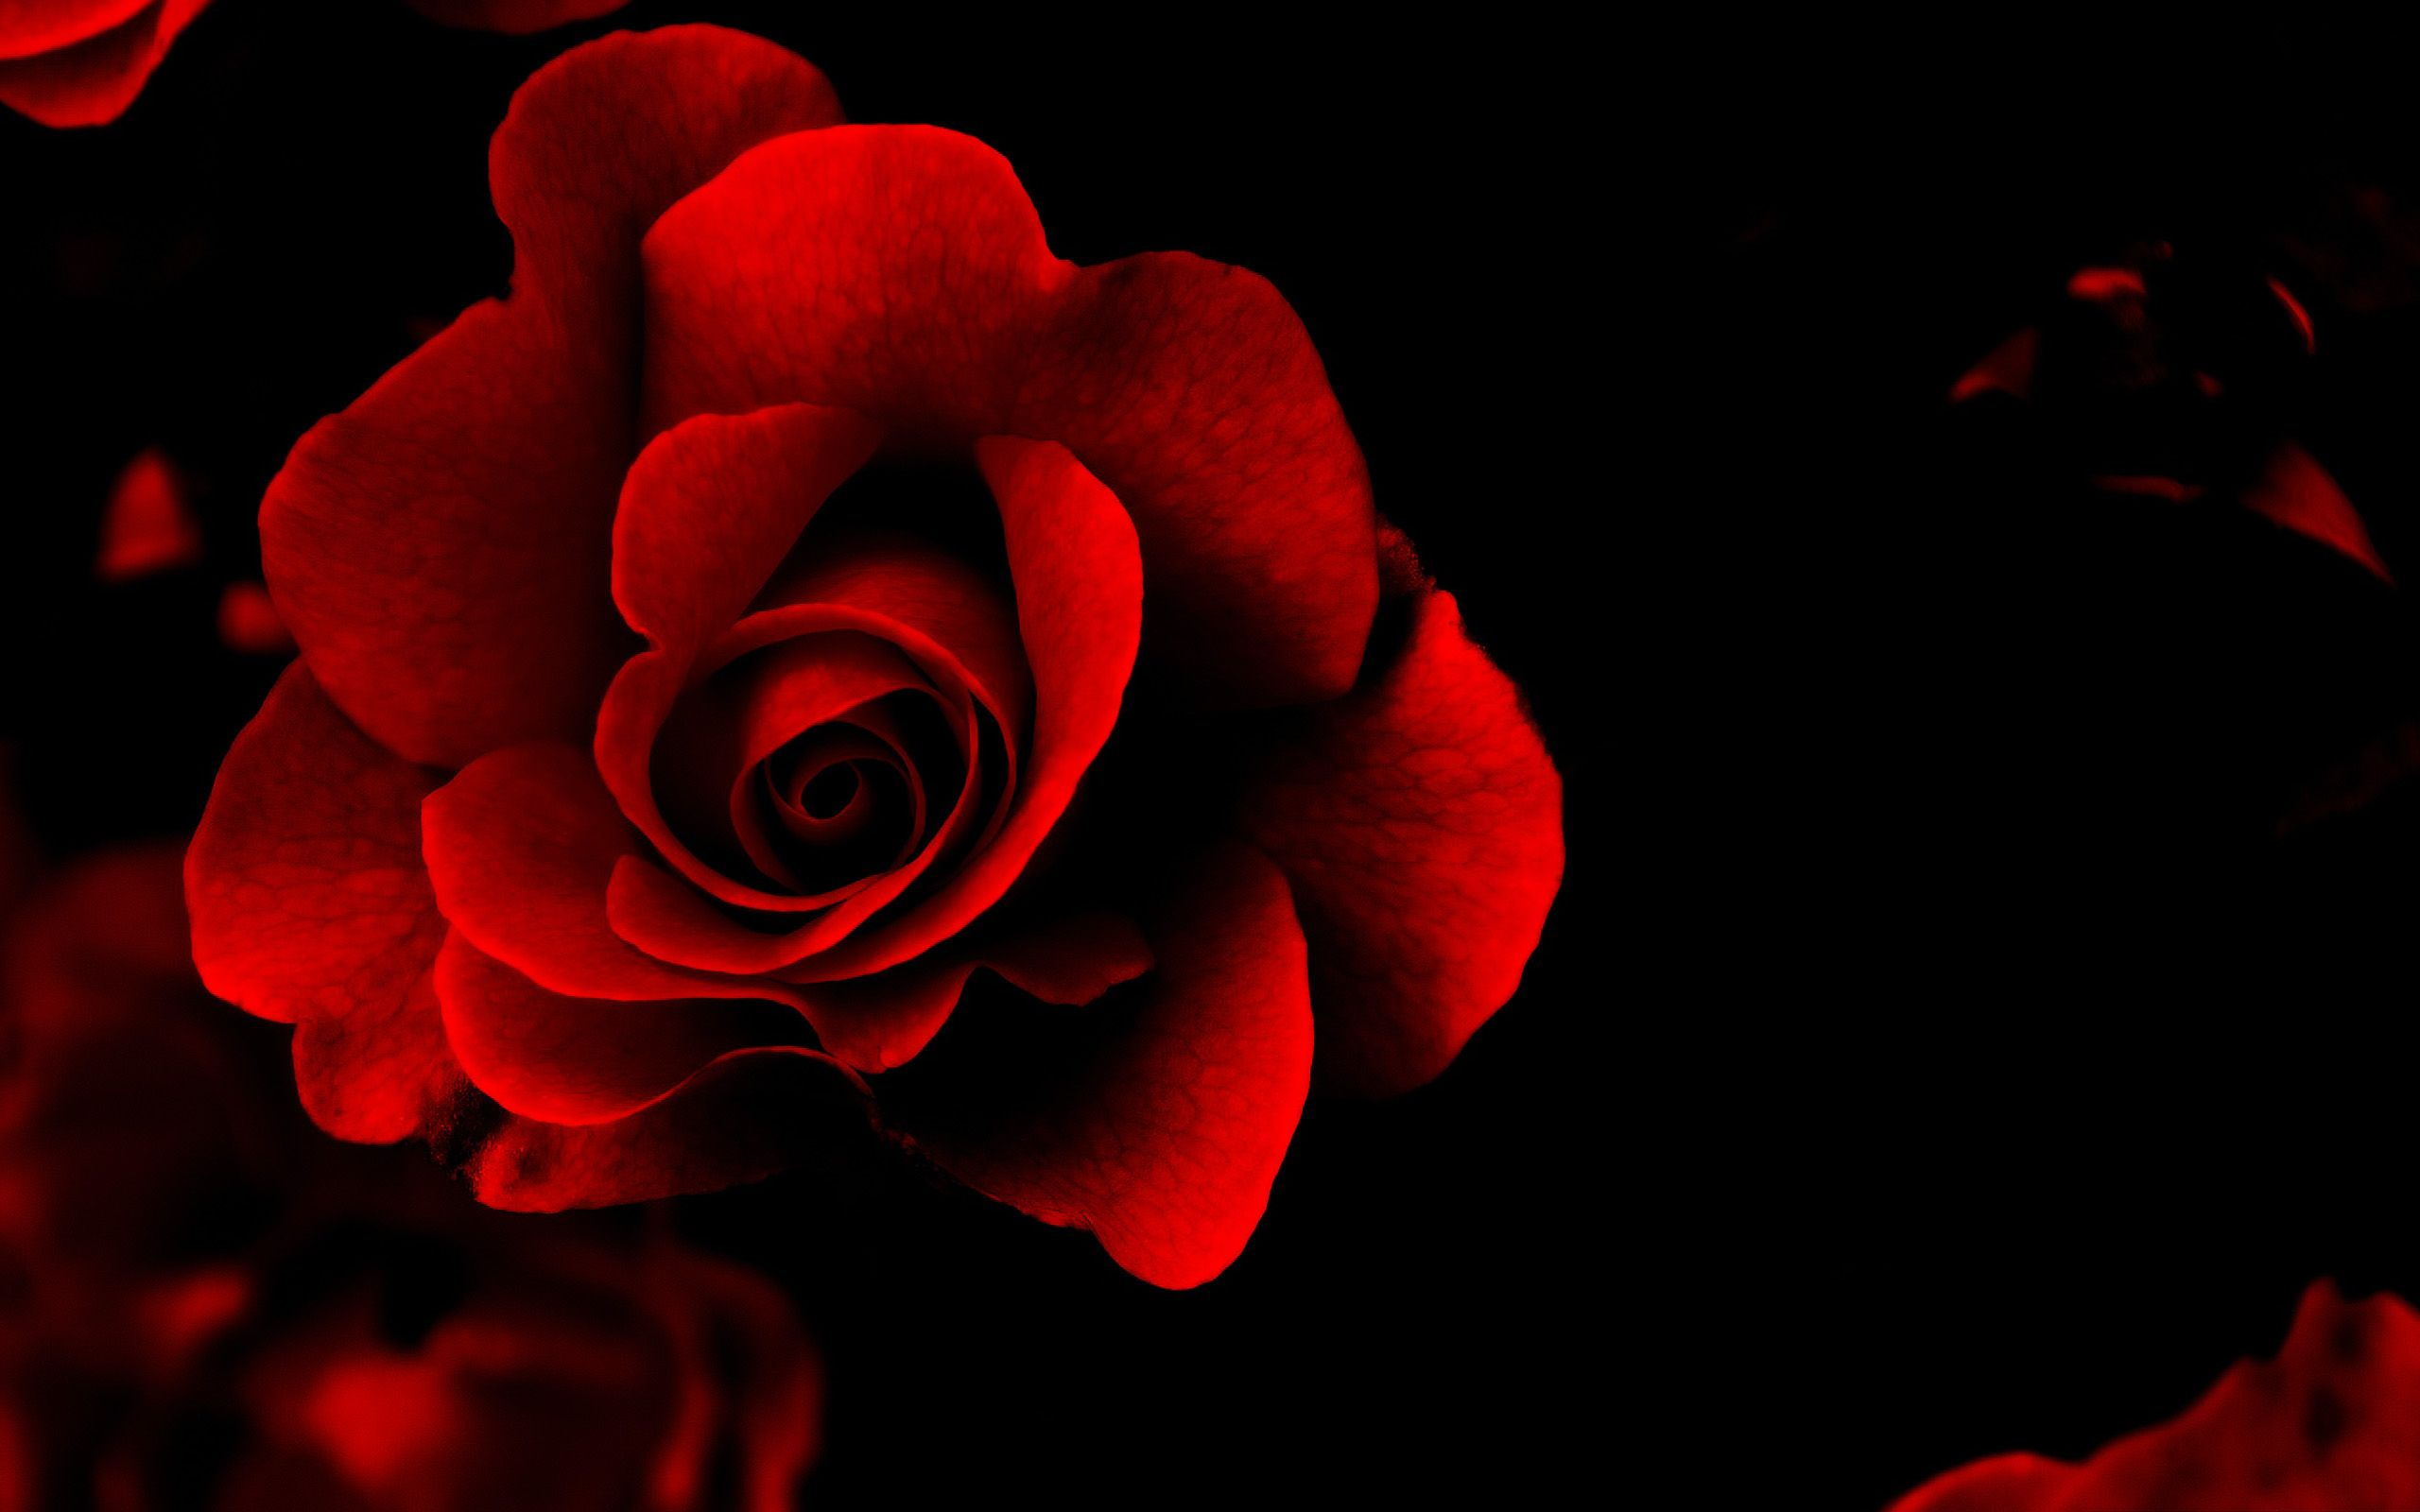 image of valentines day love Google Search Red flower